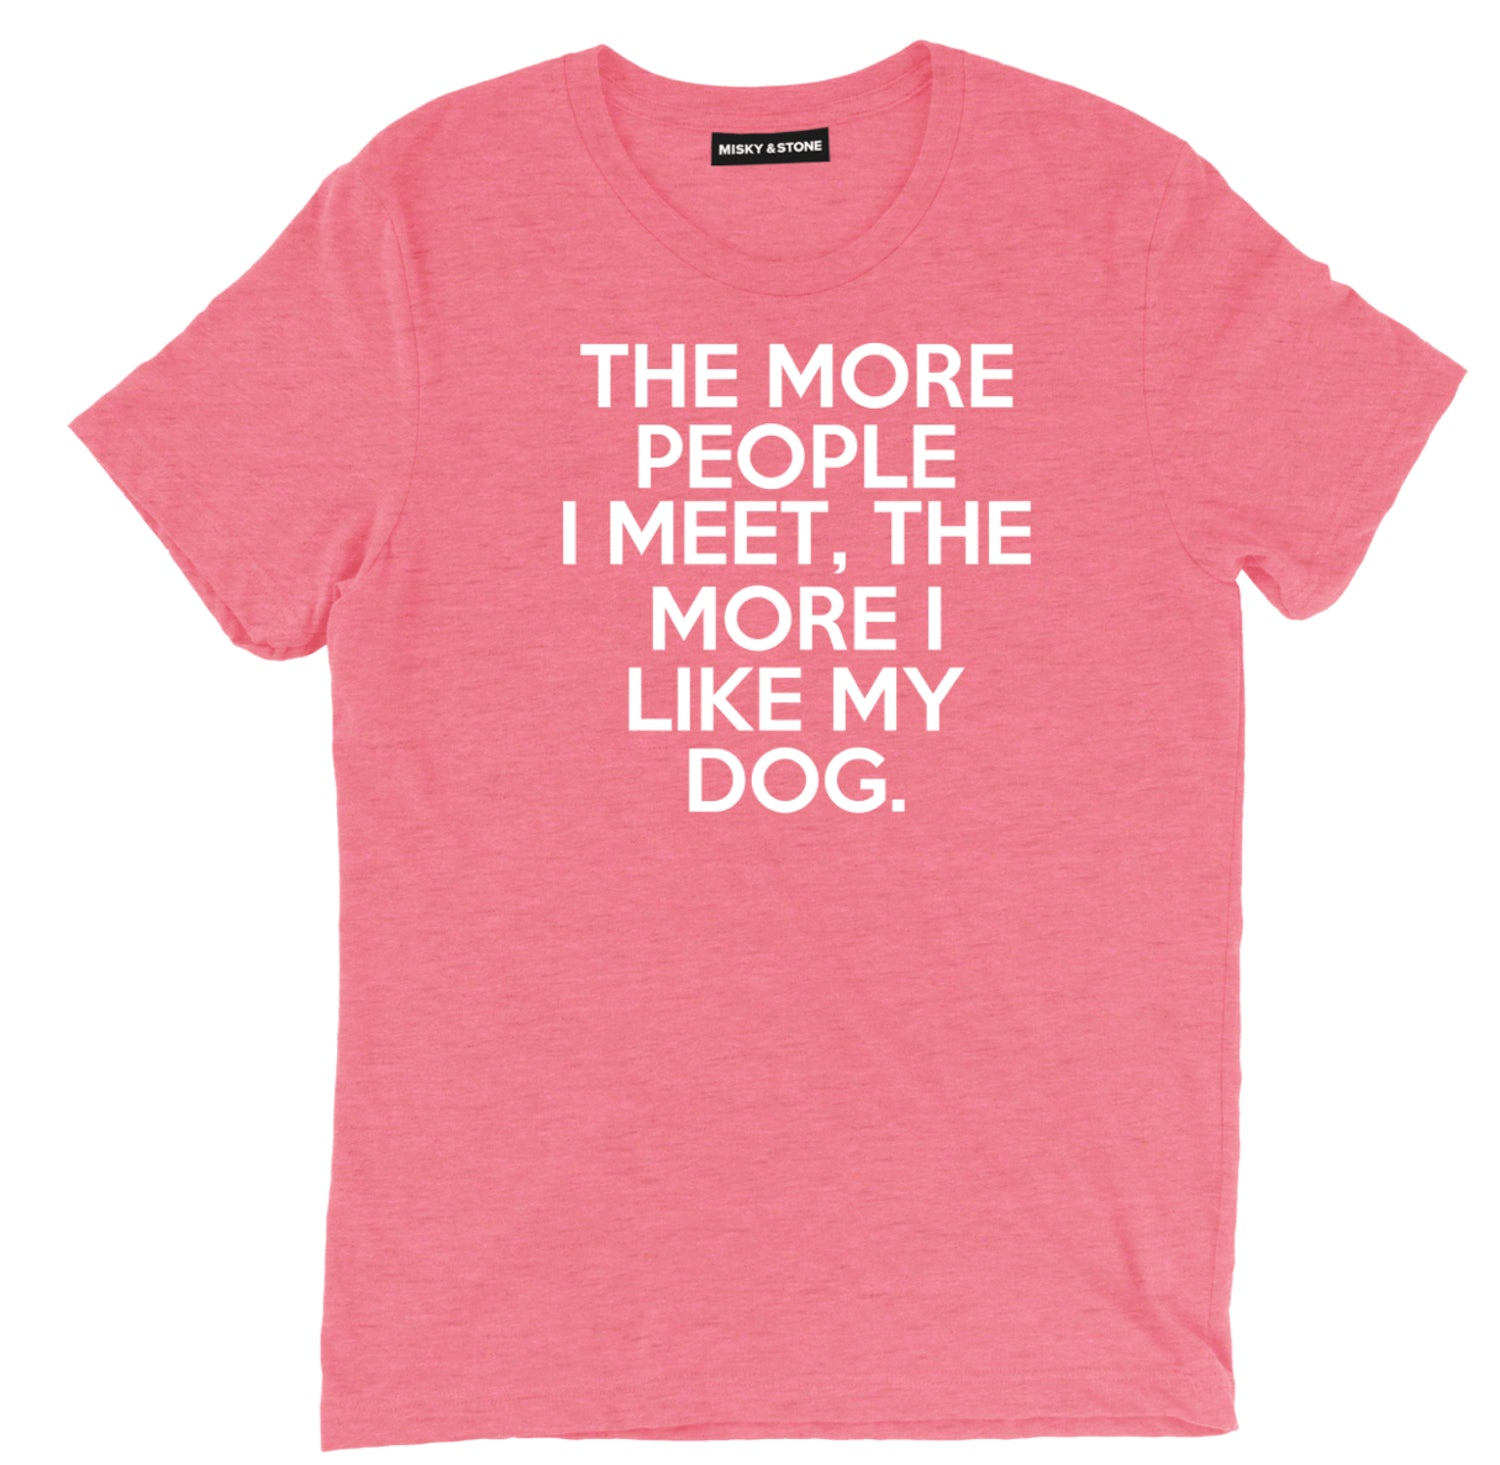 the more people i meet the more i like my dog sarcastic t shirts, i like my dog sarcastic shirts, people suck sarcastic tee shirts, sarcastic tees, sarcastic t shirt sayings, sarcastic t shirts quotes, funny sarcastic t shirts,